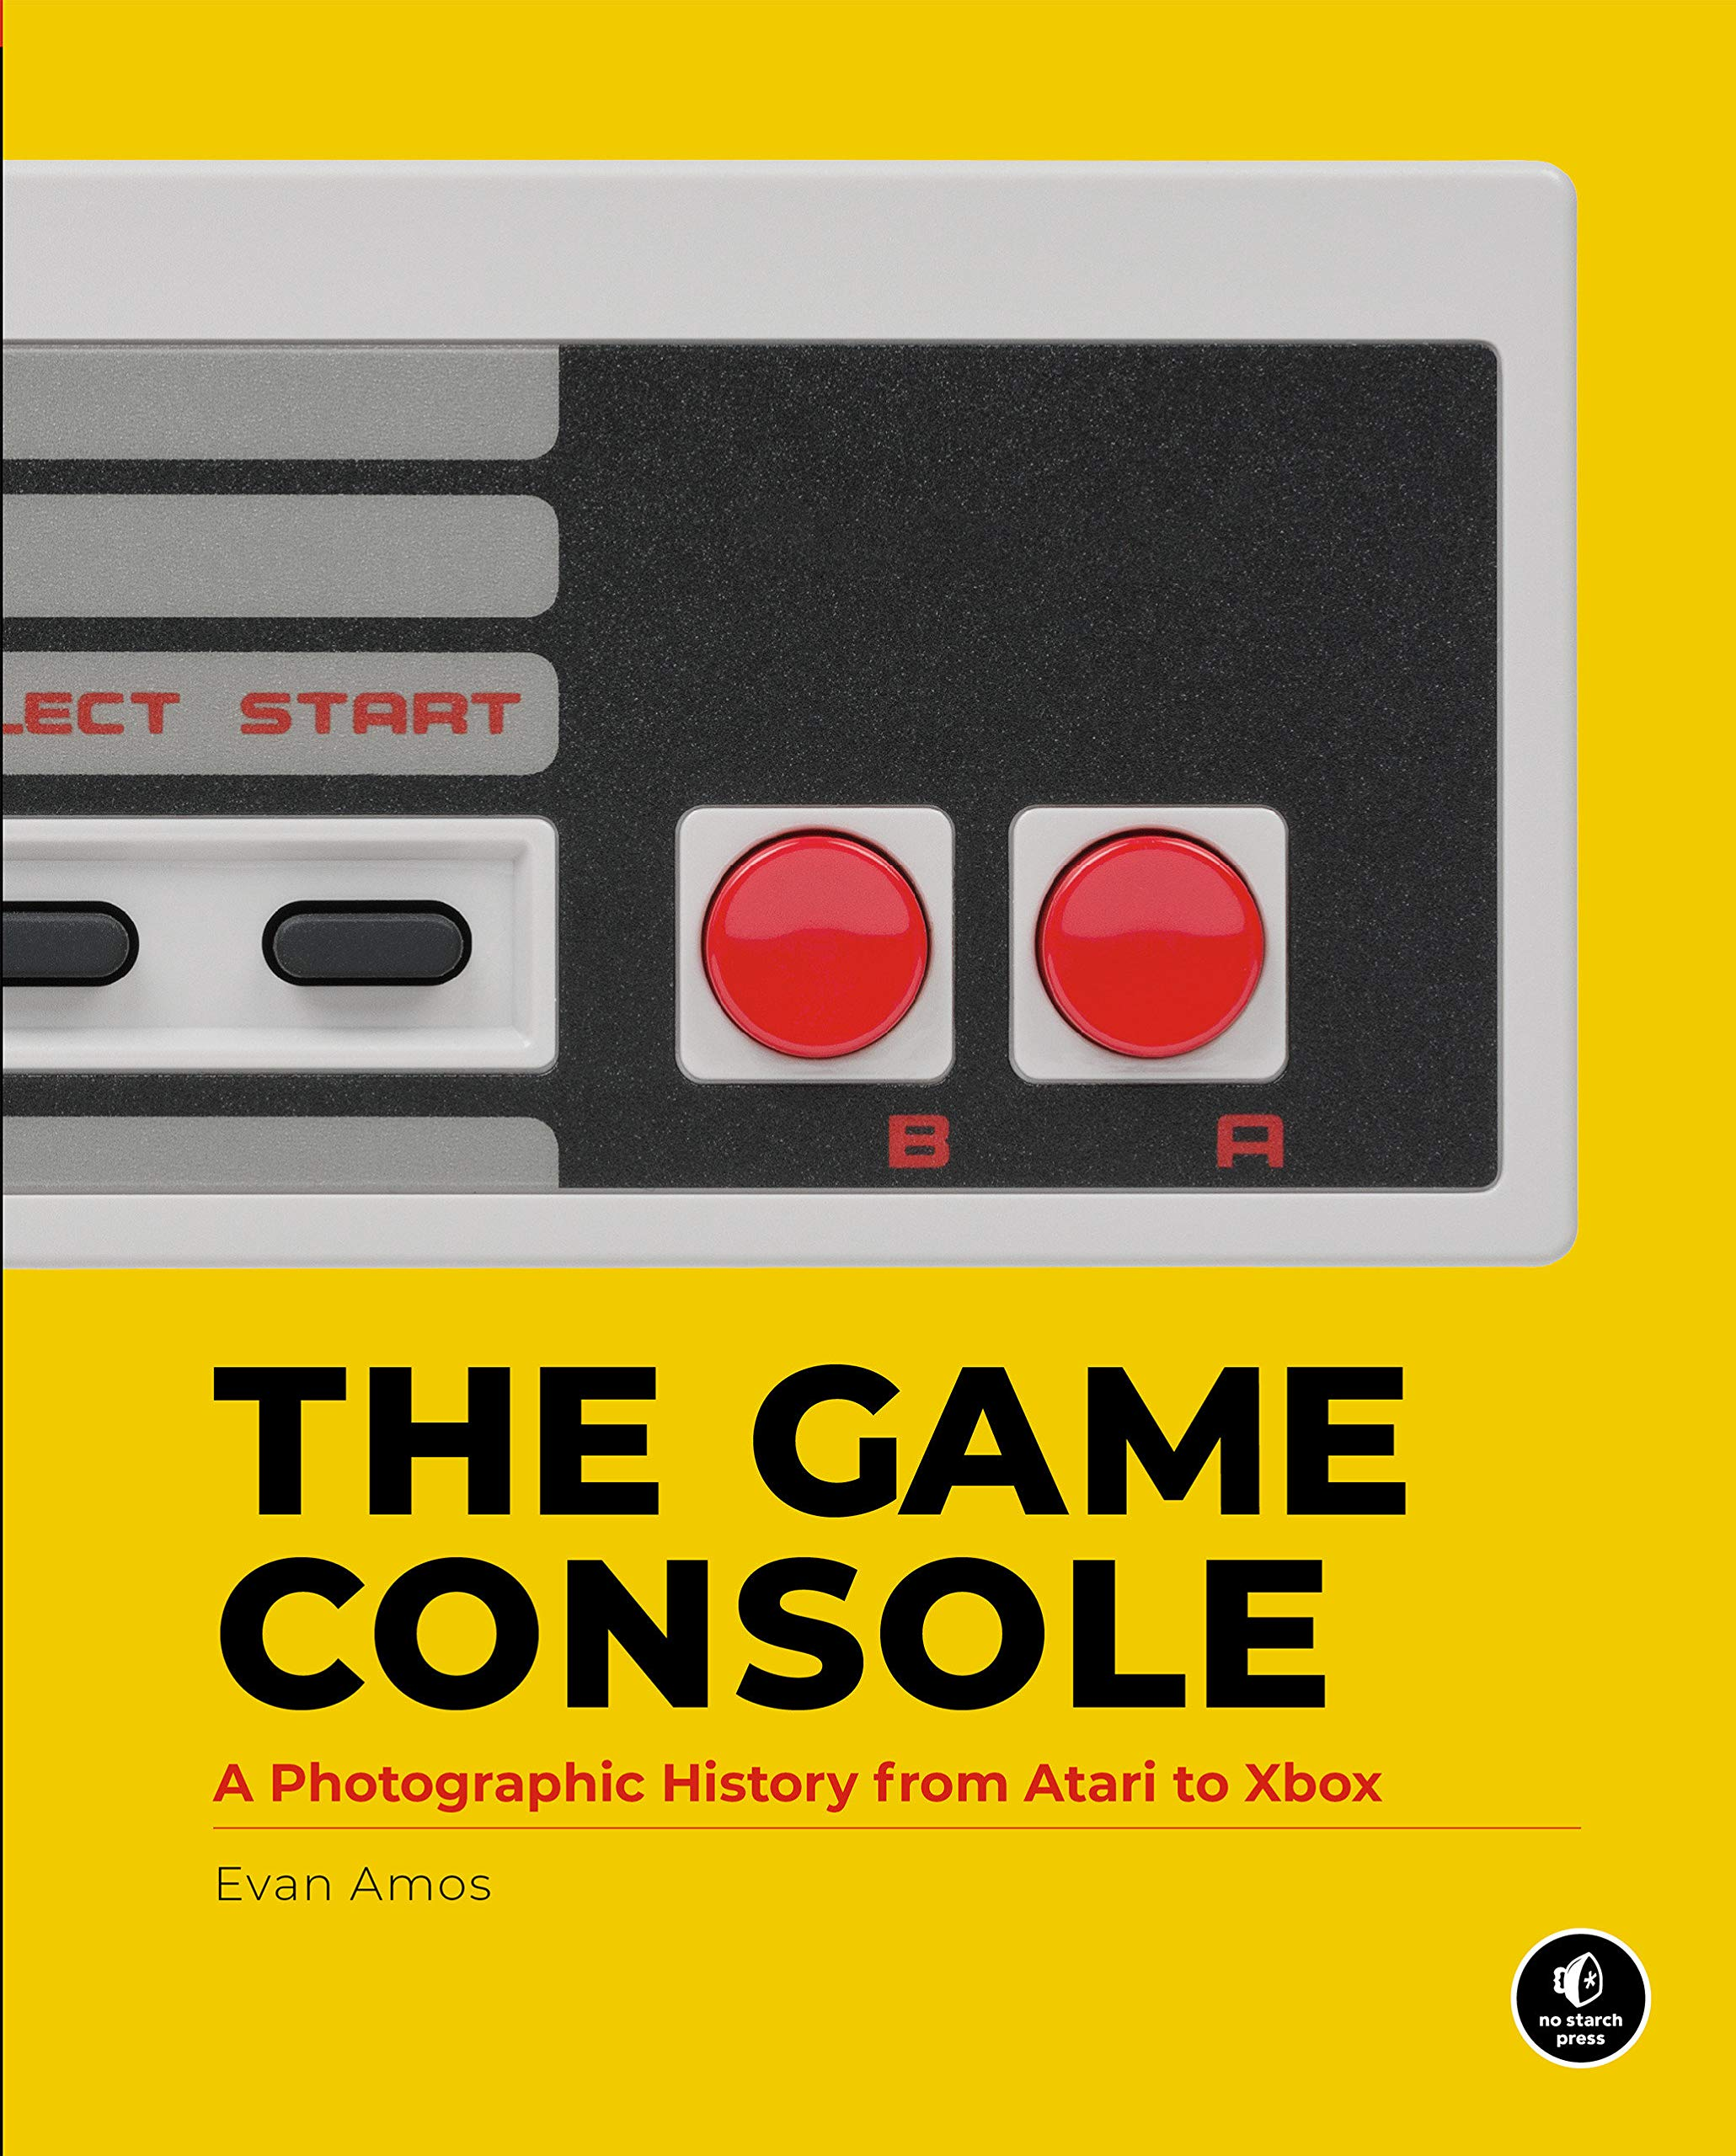 Buy The Game Console by Evan Amos